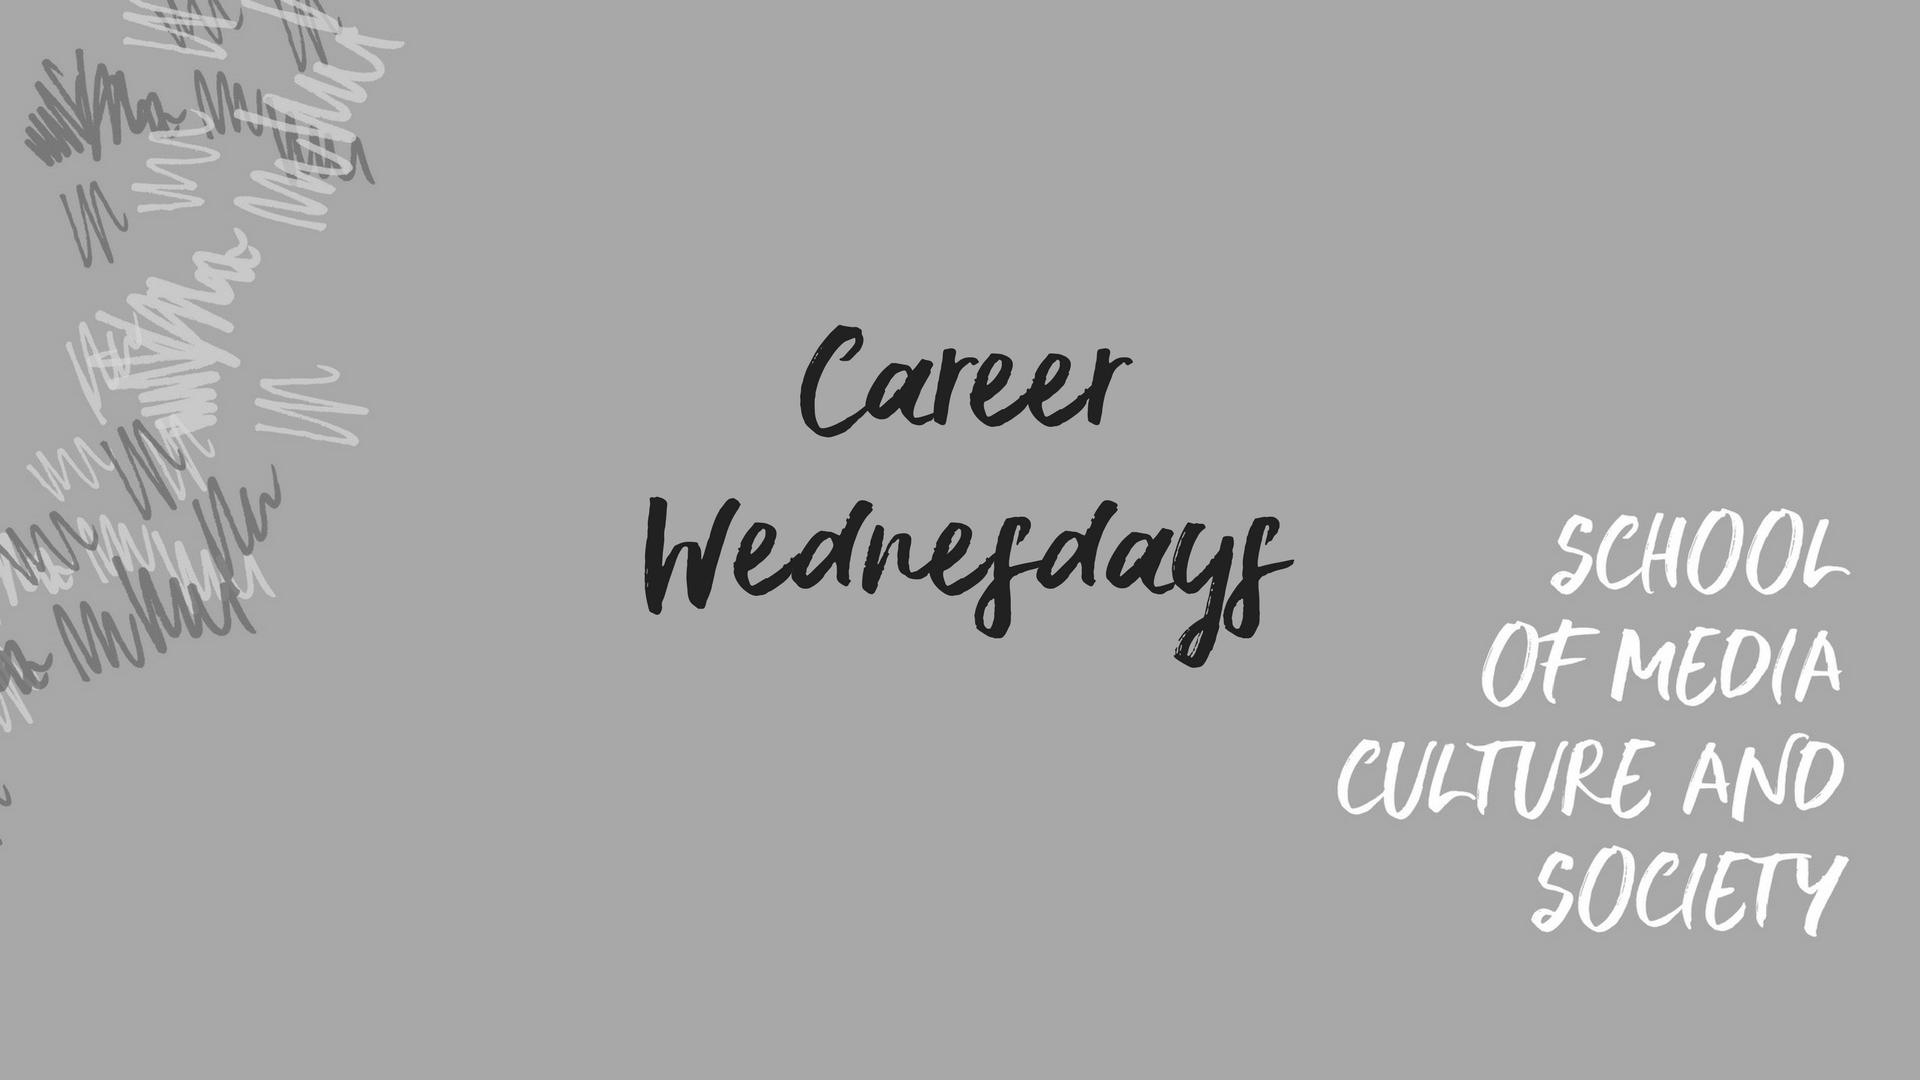 Career Wednesdays: February 14th 2018